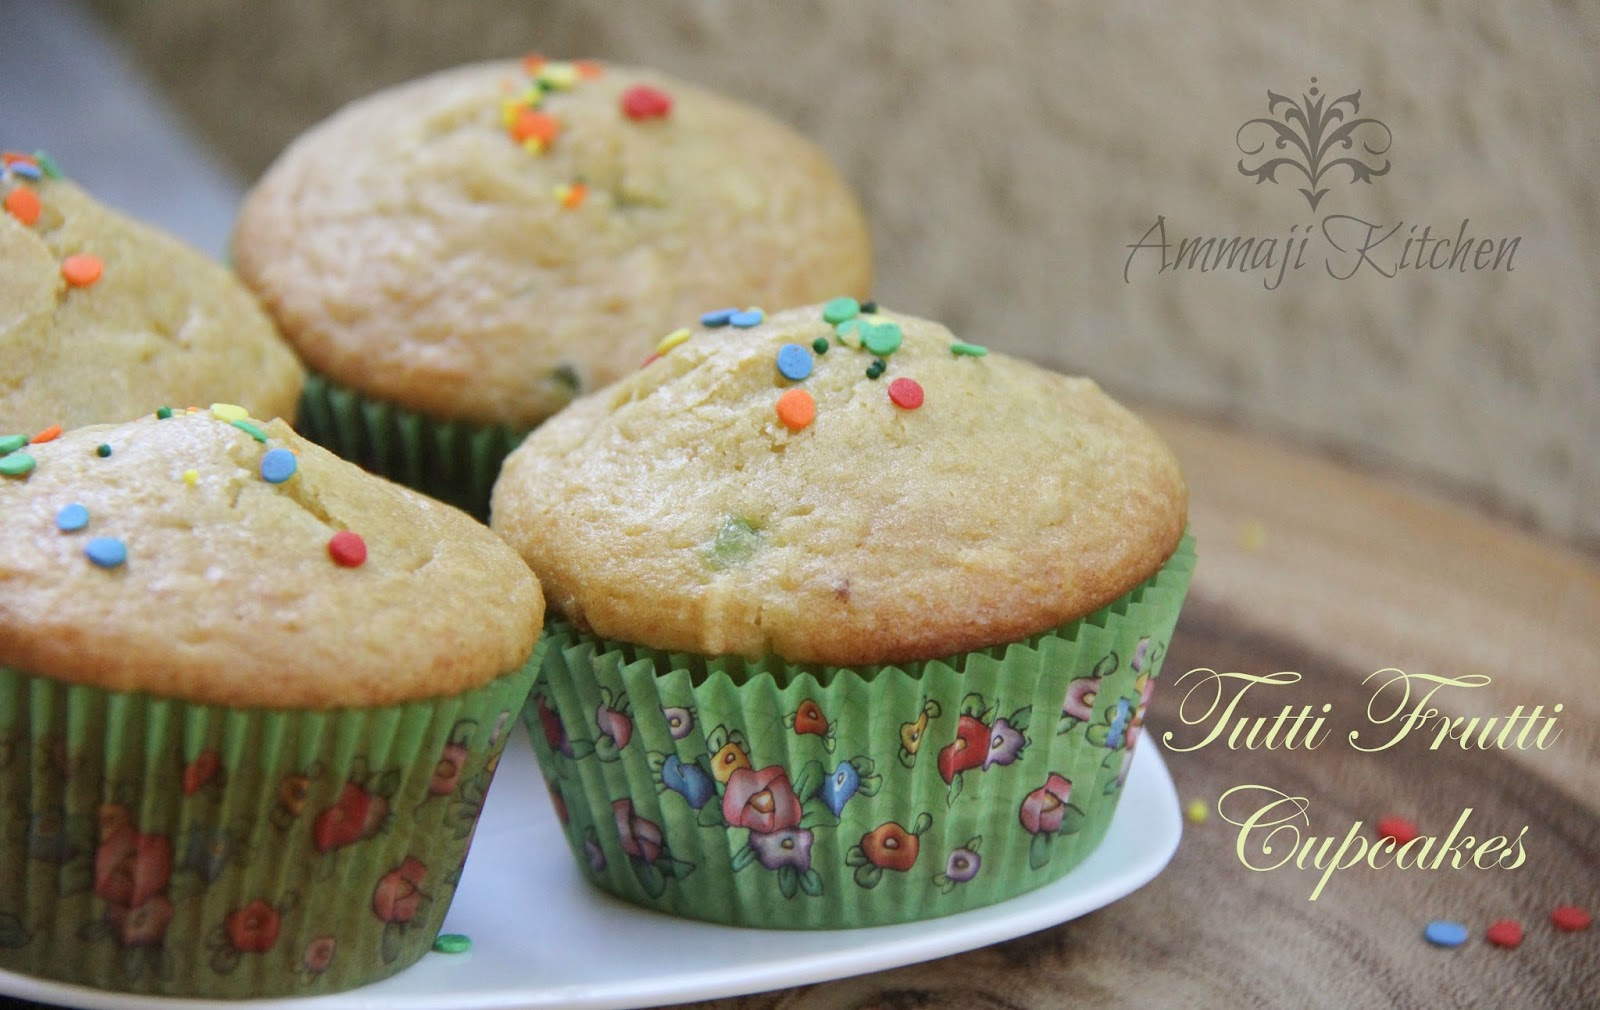 Cup Cake Recipe In Marathi Without Oven: HOW TO MAKE CUPCAKES AT HOME WITHOUT OVEN IN HINDI